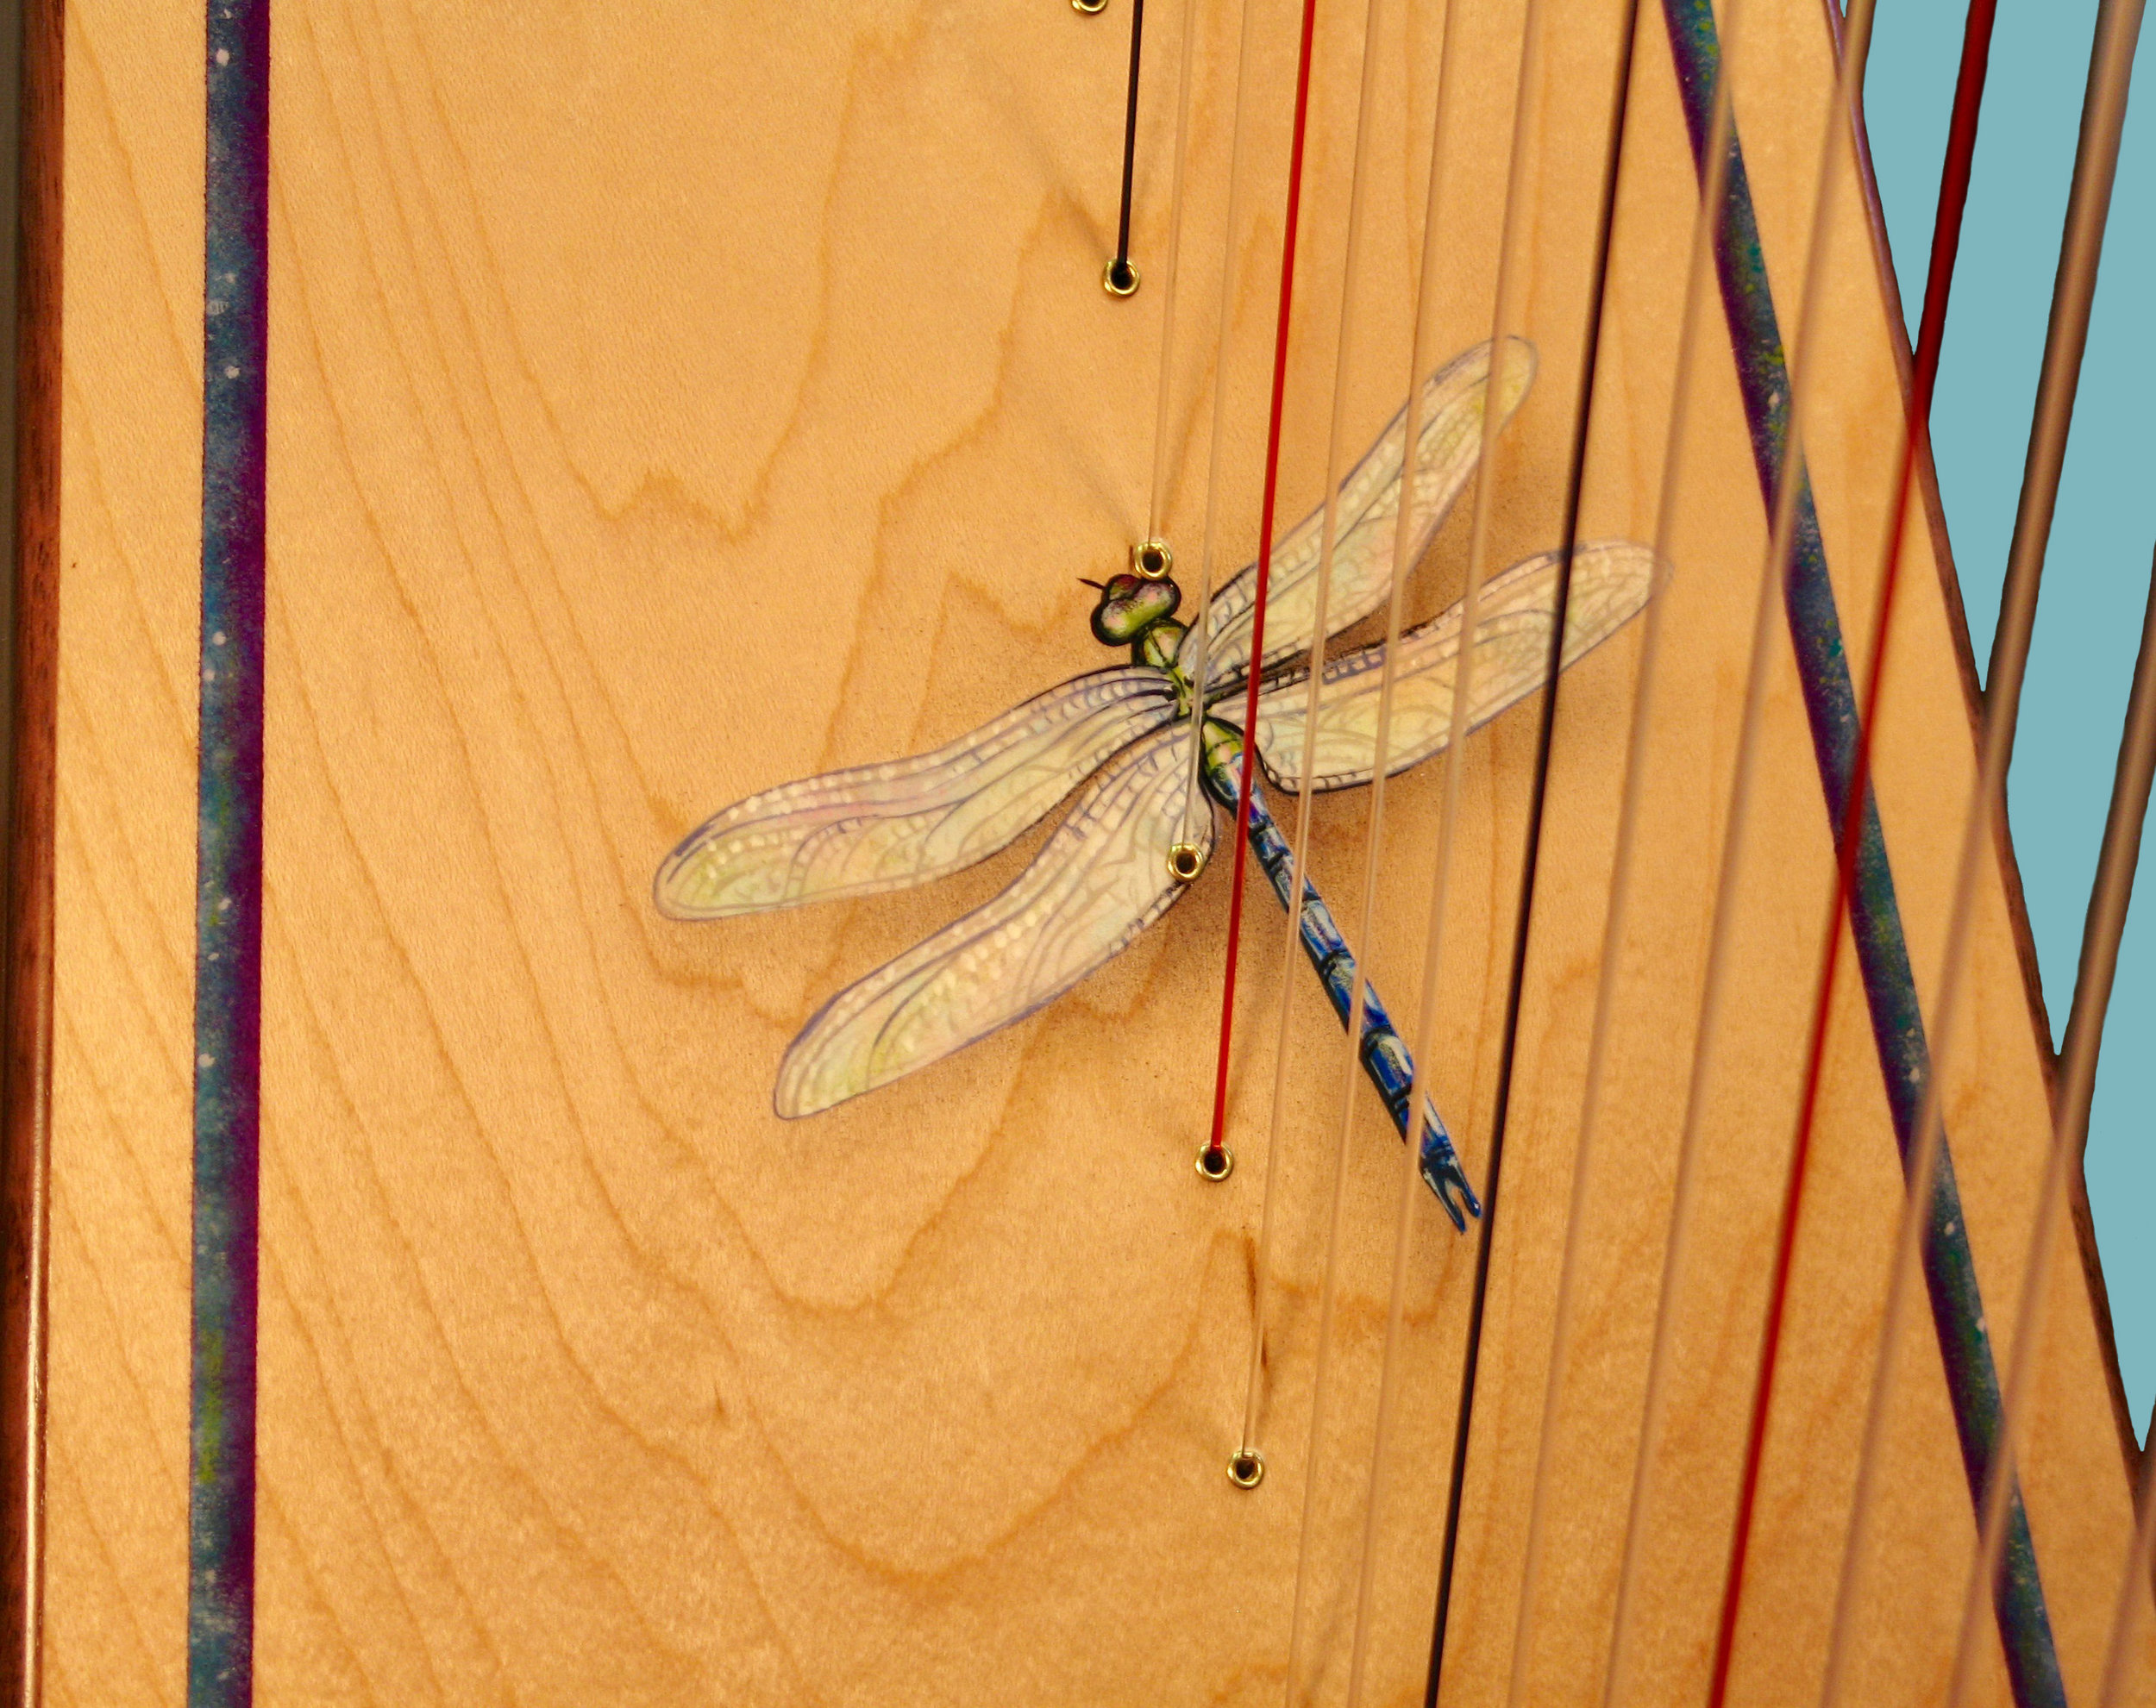 Custom dragonfly and border handpainted by Garen Rees on a harp soundboard. This is a one-of-a-kind harp design requested by a customer.